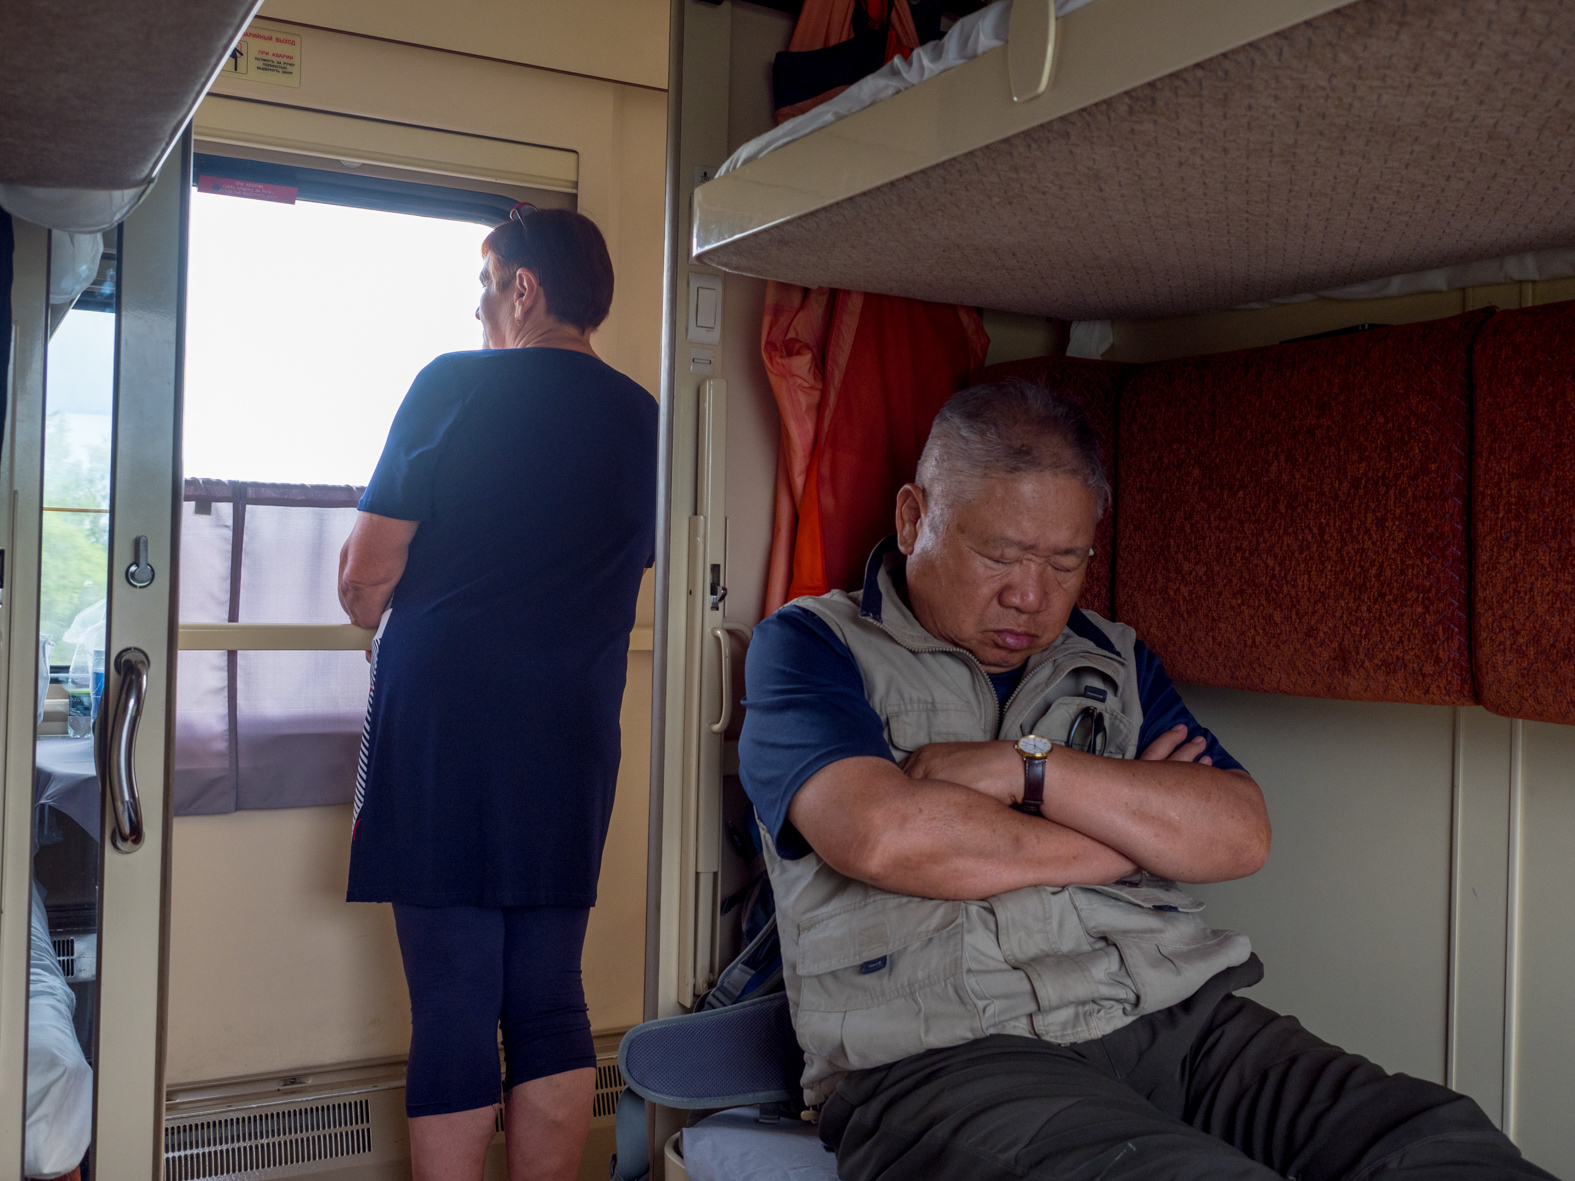 67 year old Korean egineer, Chong, asleep on his bunk. The Trans-Siberian Railway from Moscow-Vladivostok, spanning a length of 9,289km, is the longest uninterrupted single country train journey in the world. It has connected Moscow with Vladivostok since 1916, and is still being expanded. It was built between 1891 and 1916 under the supervision of Russian government ministers personally appointed by Tsar Alexander III and his son, the Tsarevich Nicholas (later Tsar Nicholas II).